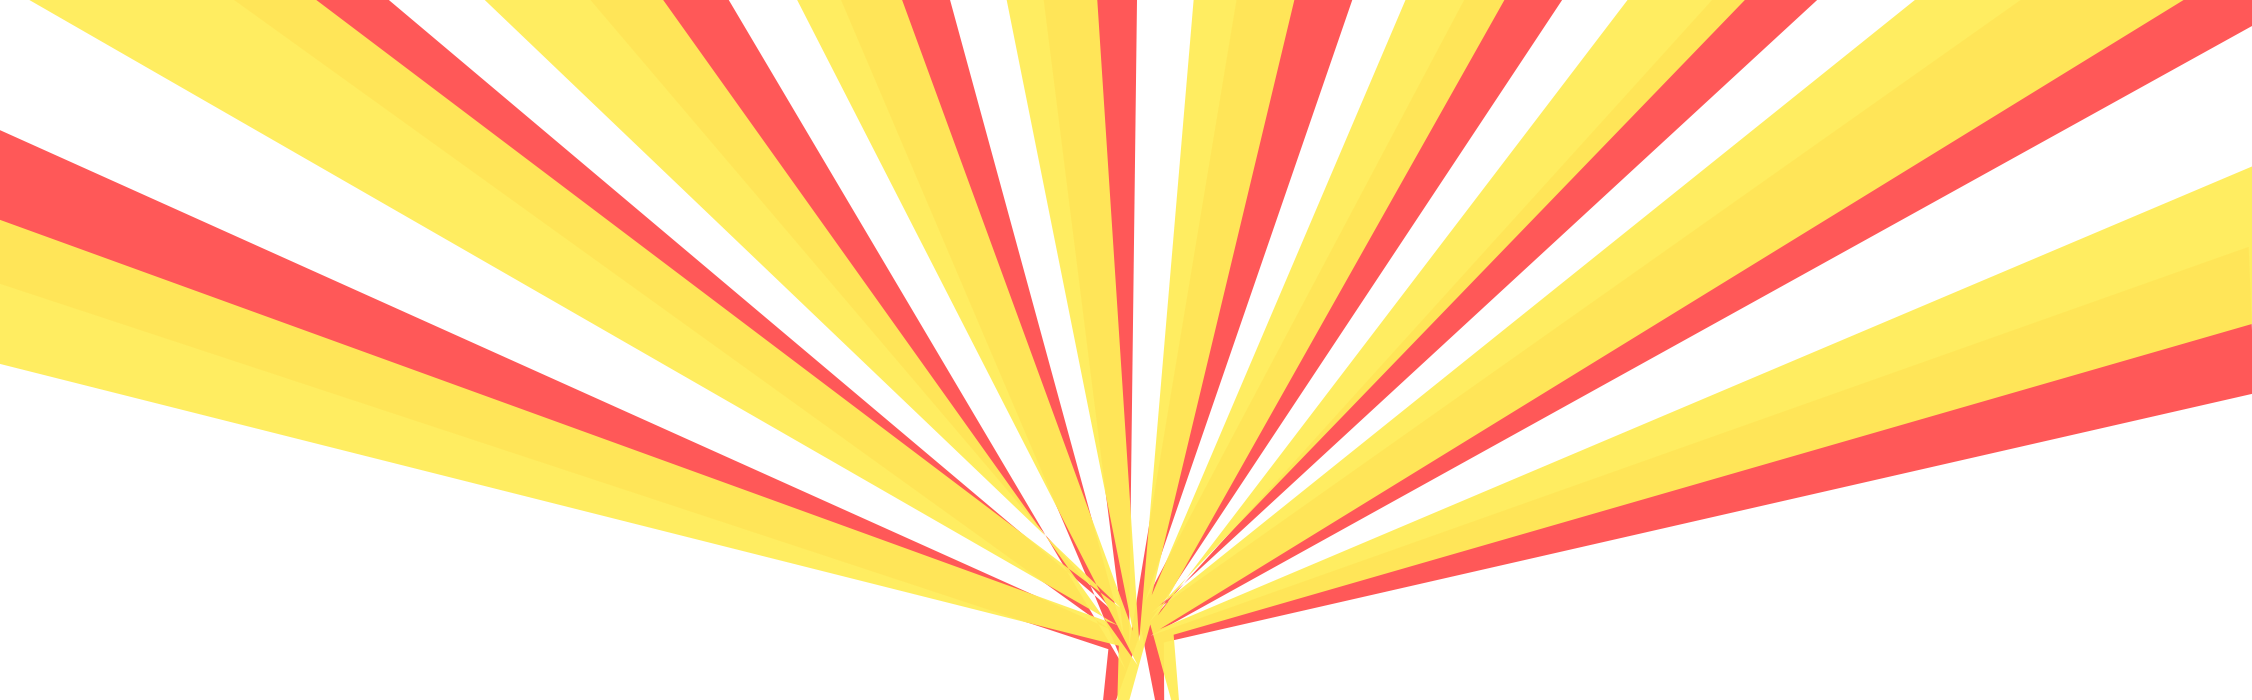 Sun Rays Background Transparent